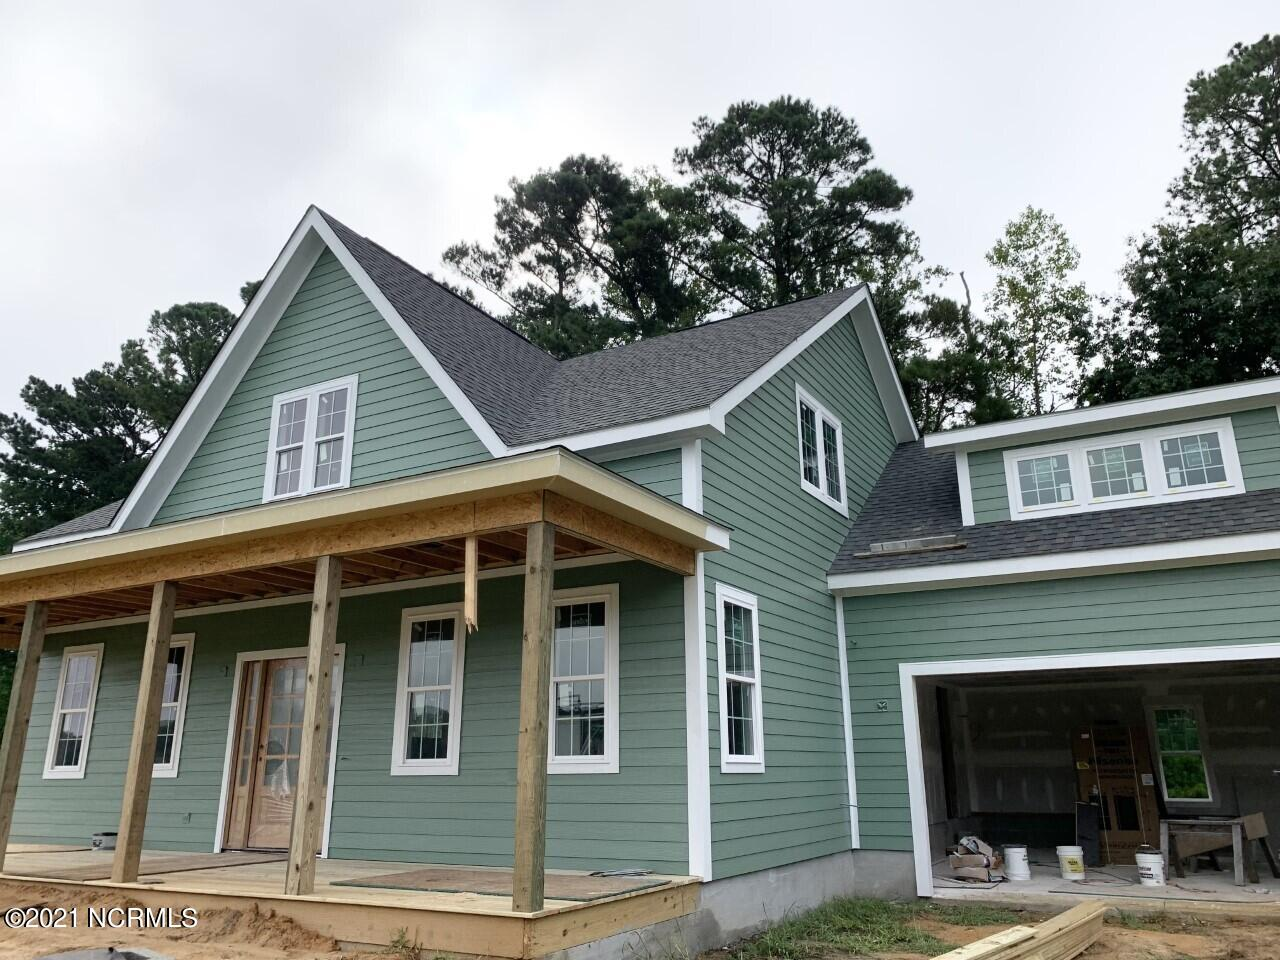 225 Pintail Drive, Minnesott Beach, North Carolina 28510, 3 Bedrooms Bedrooms, 8 Rooms Rooms,2 BathroomsBathrooms,Single family residence,For sale,Pintail,100287339